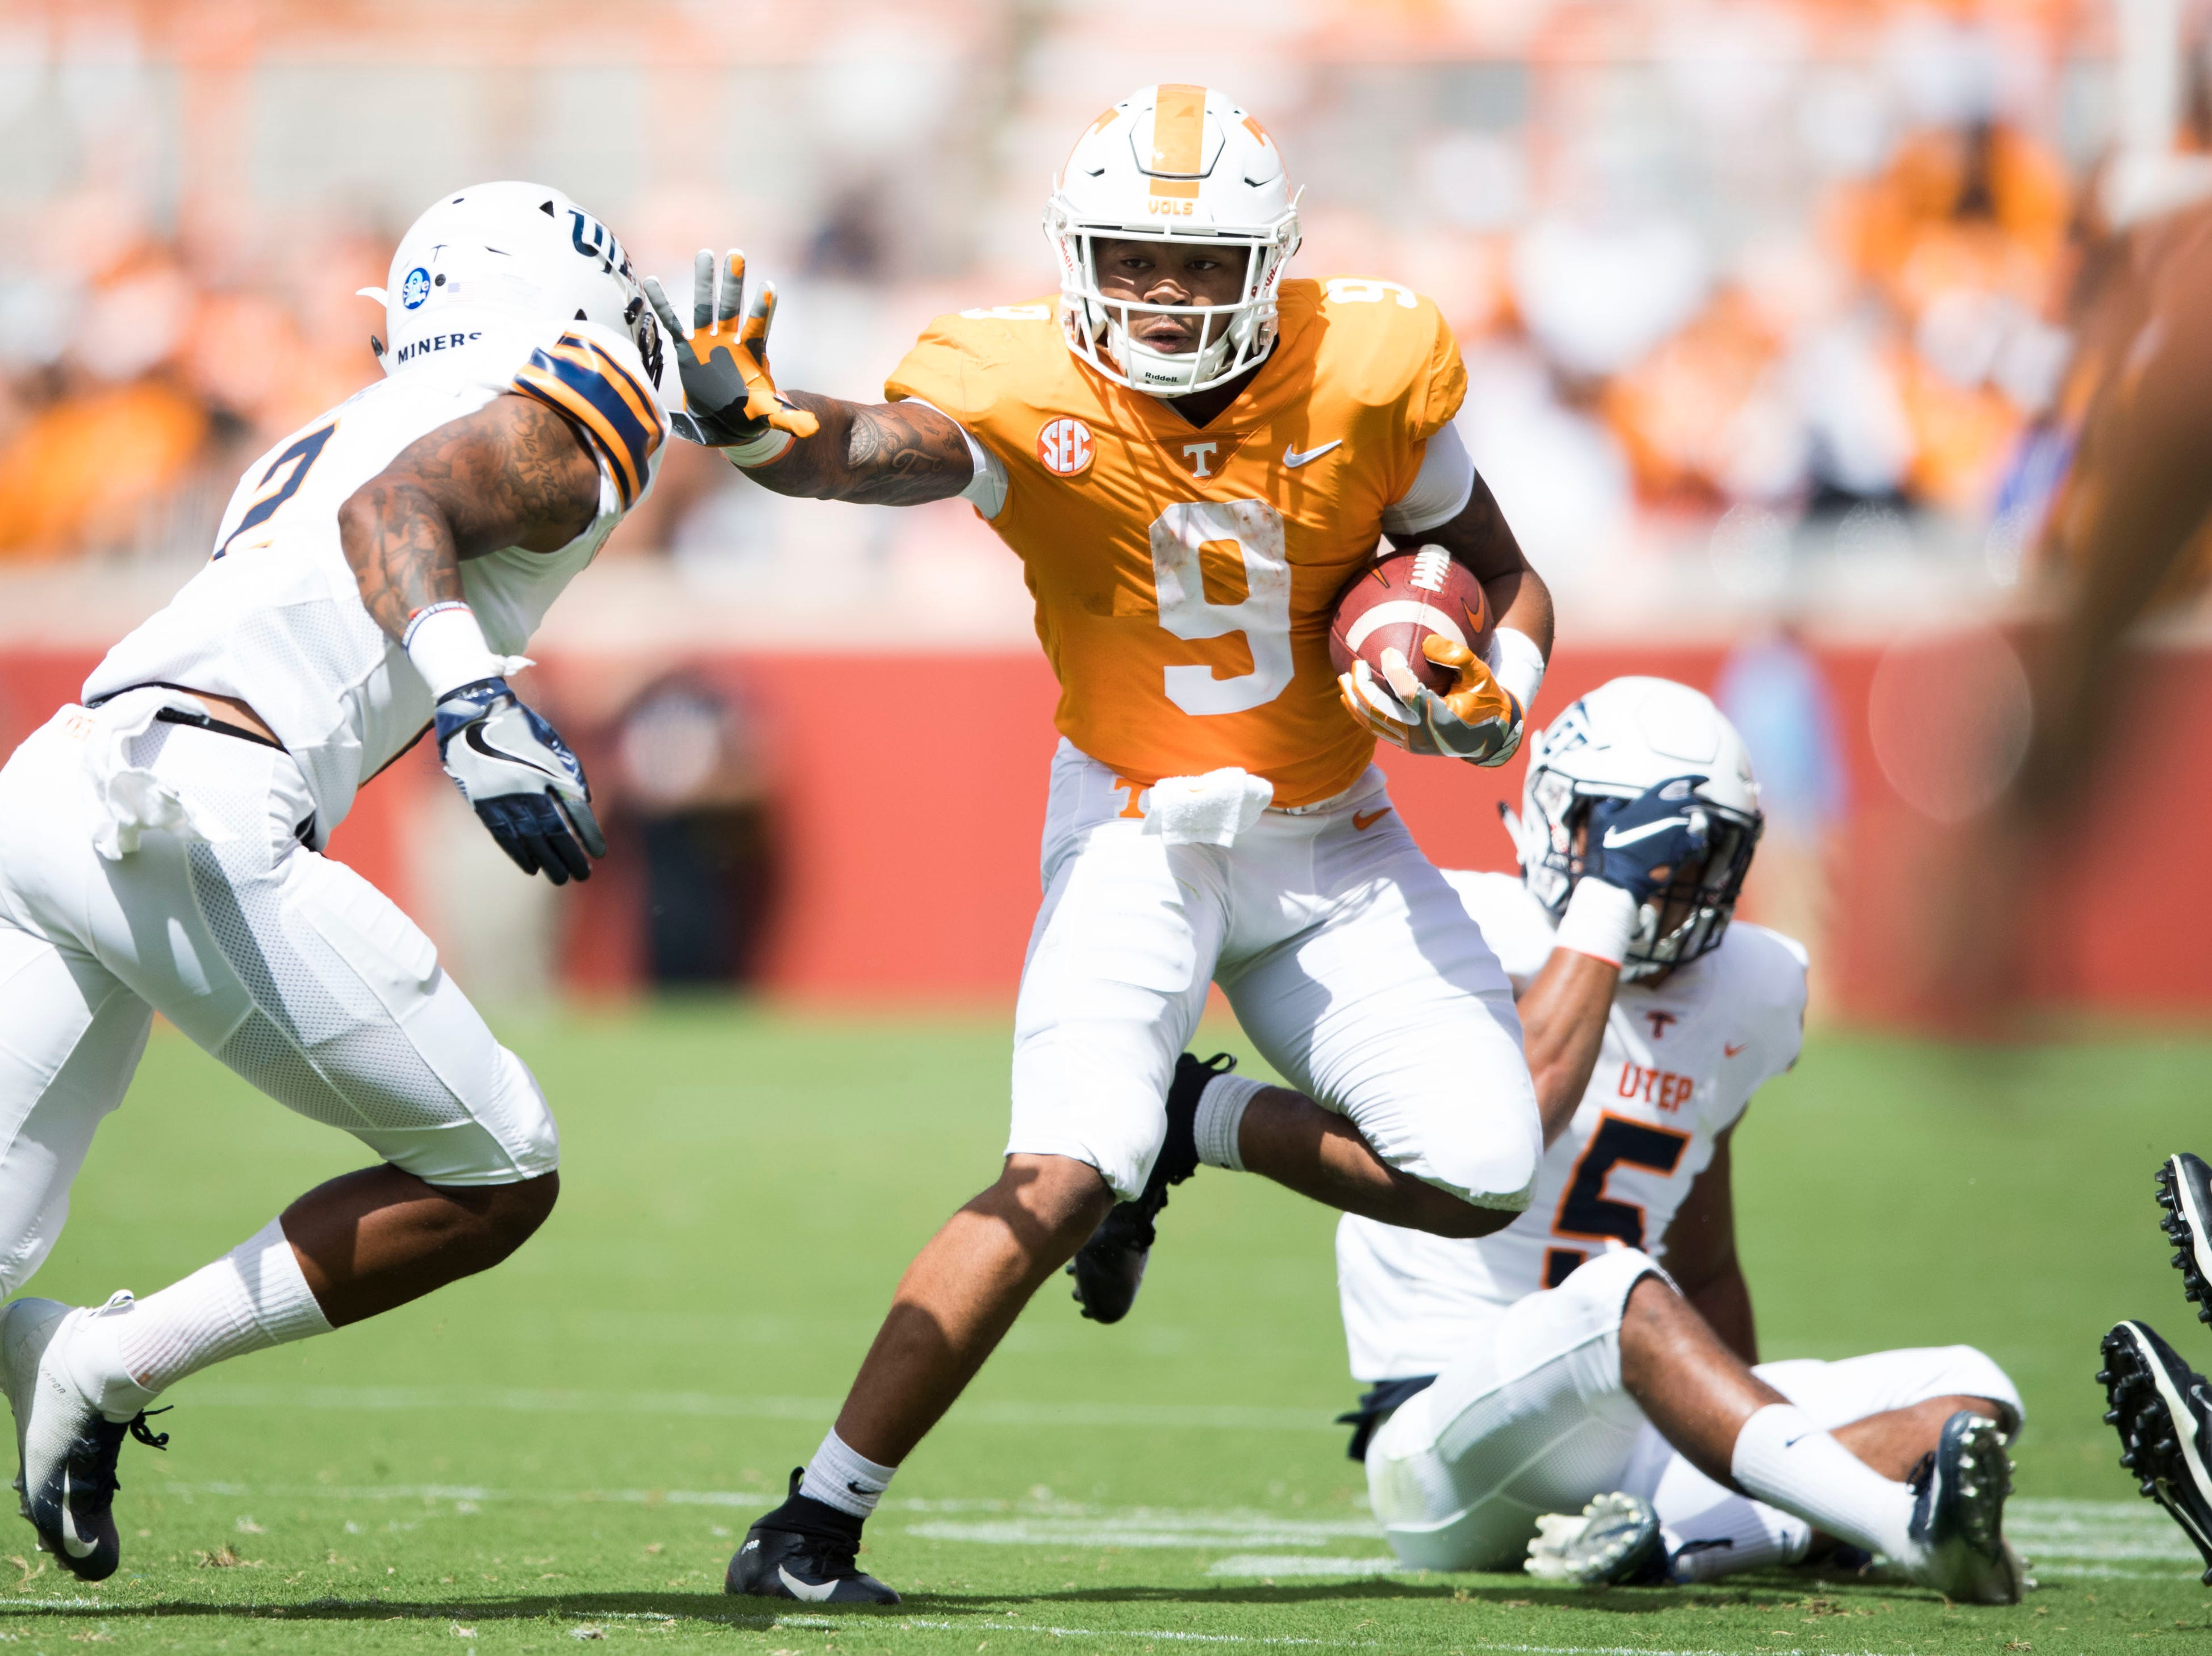 Tennessee running back Tim Jordan (9) fends off a UTEP player during a game between UT and UTEP in Neyland Stadium Sept. 15, 2018.